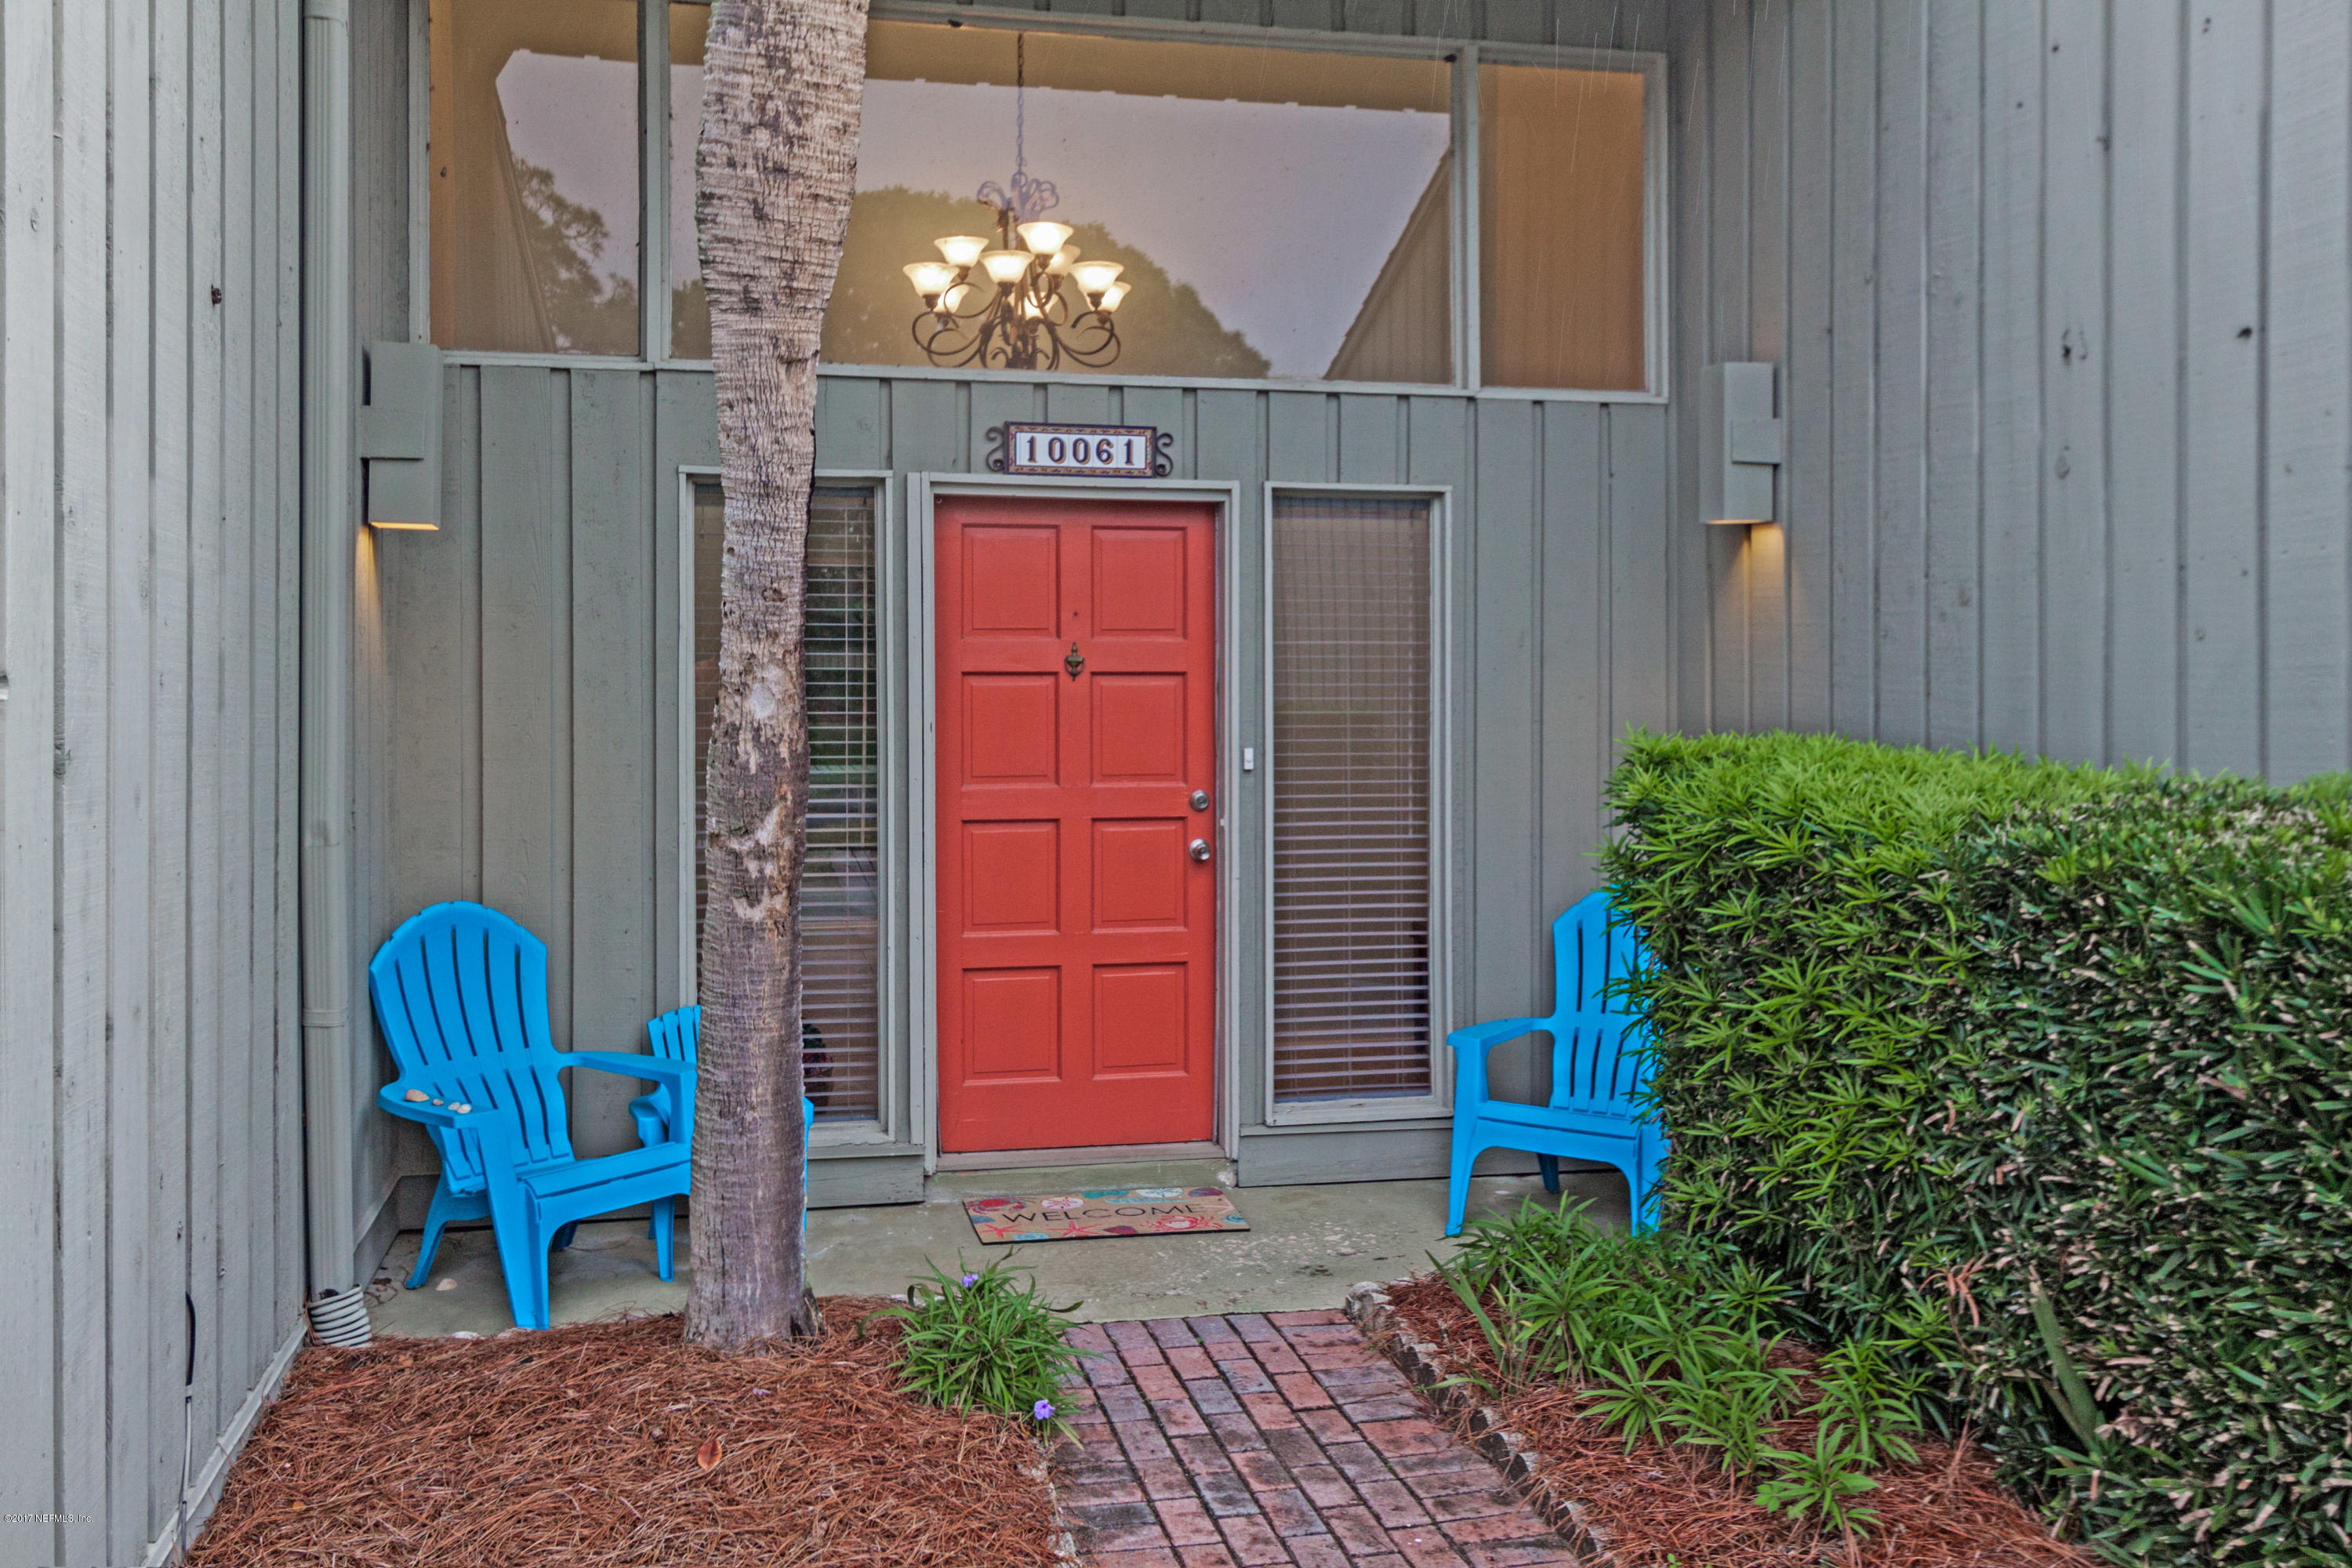 10061 SAWGRASS, PONTE VEDRA BEACH, FLORIDA 32082, 2 Bedrooms Bedrooms, ,2 BathroomsBathrooms,Rental,For Rent,SAWGRASS,1082991